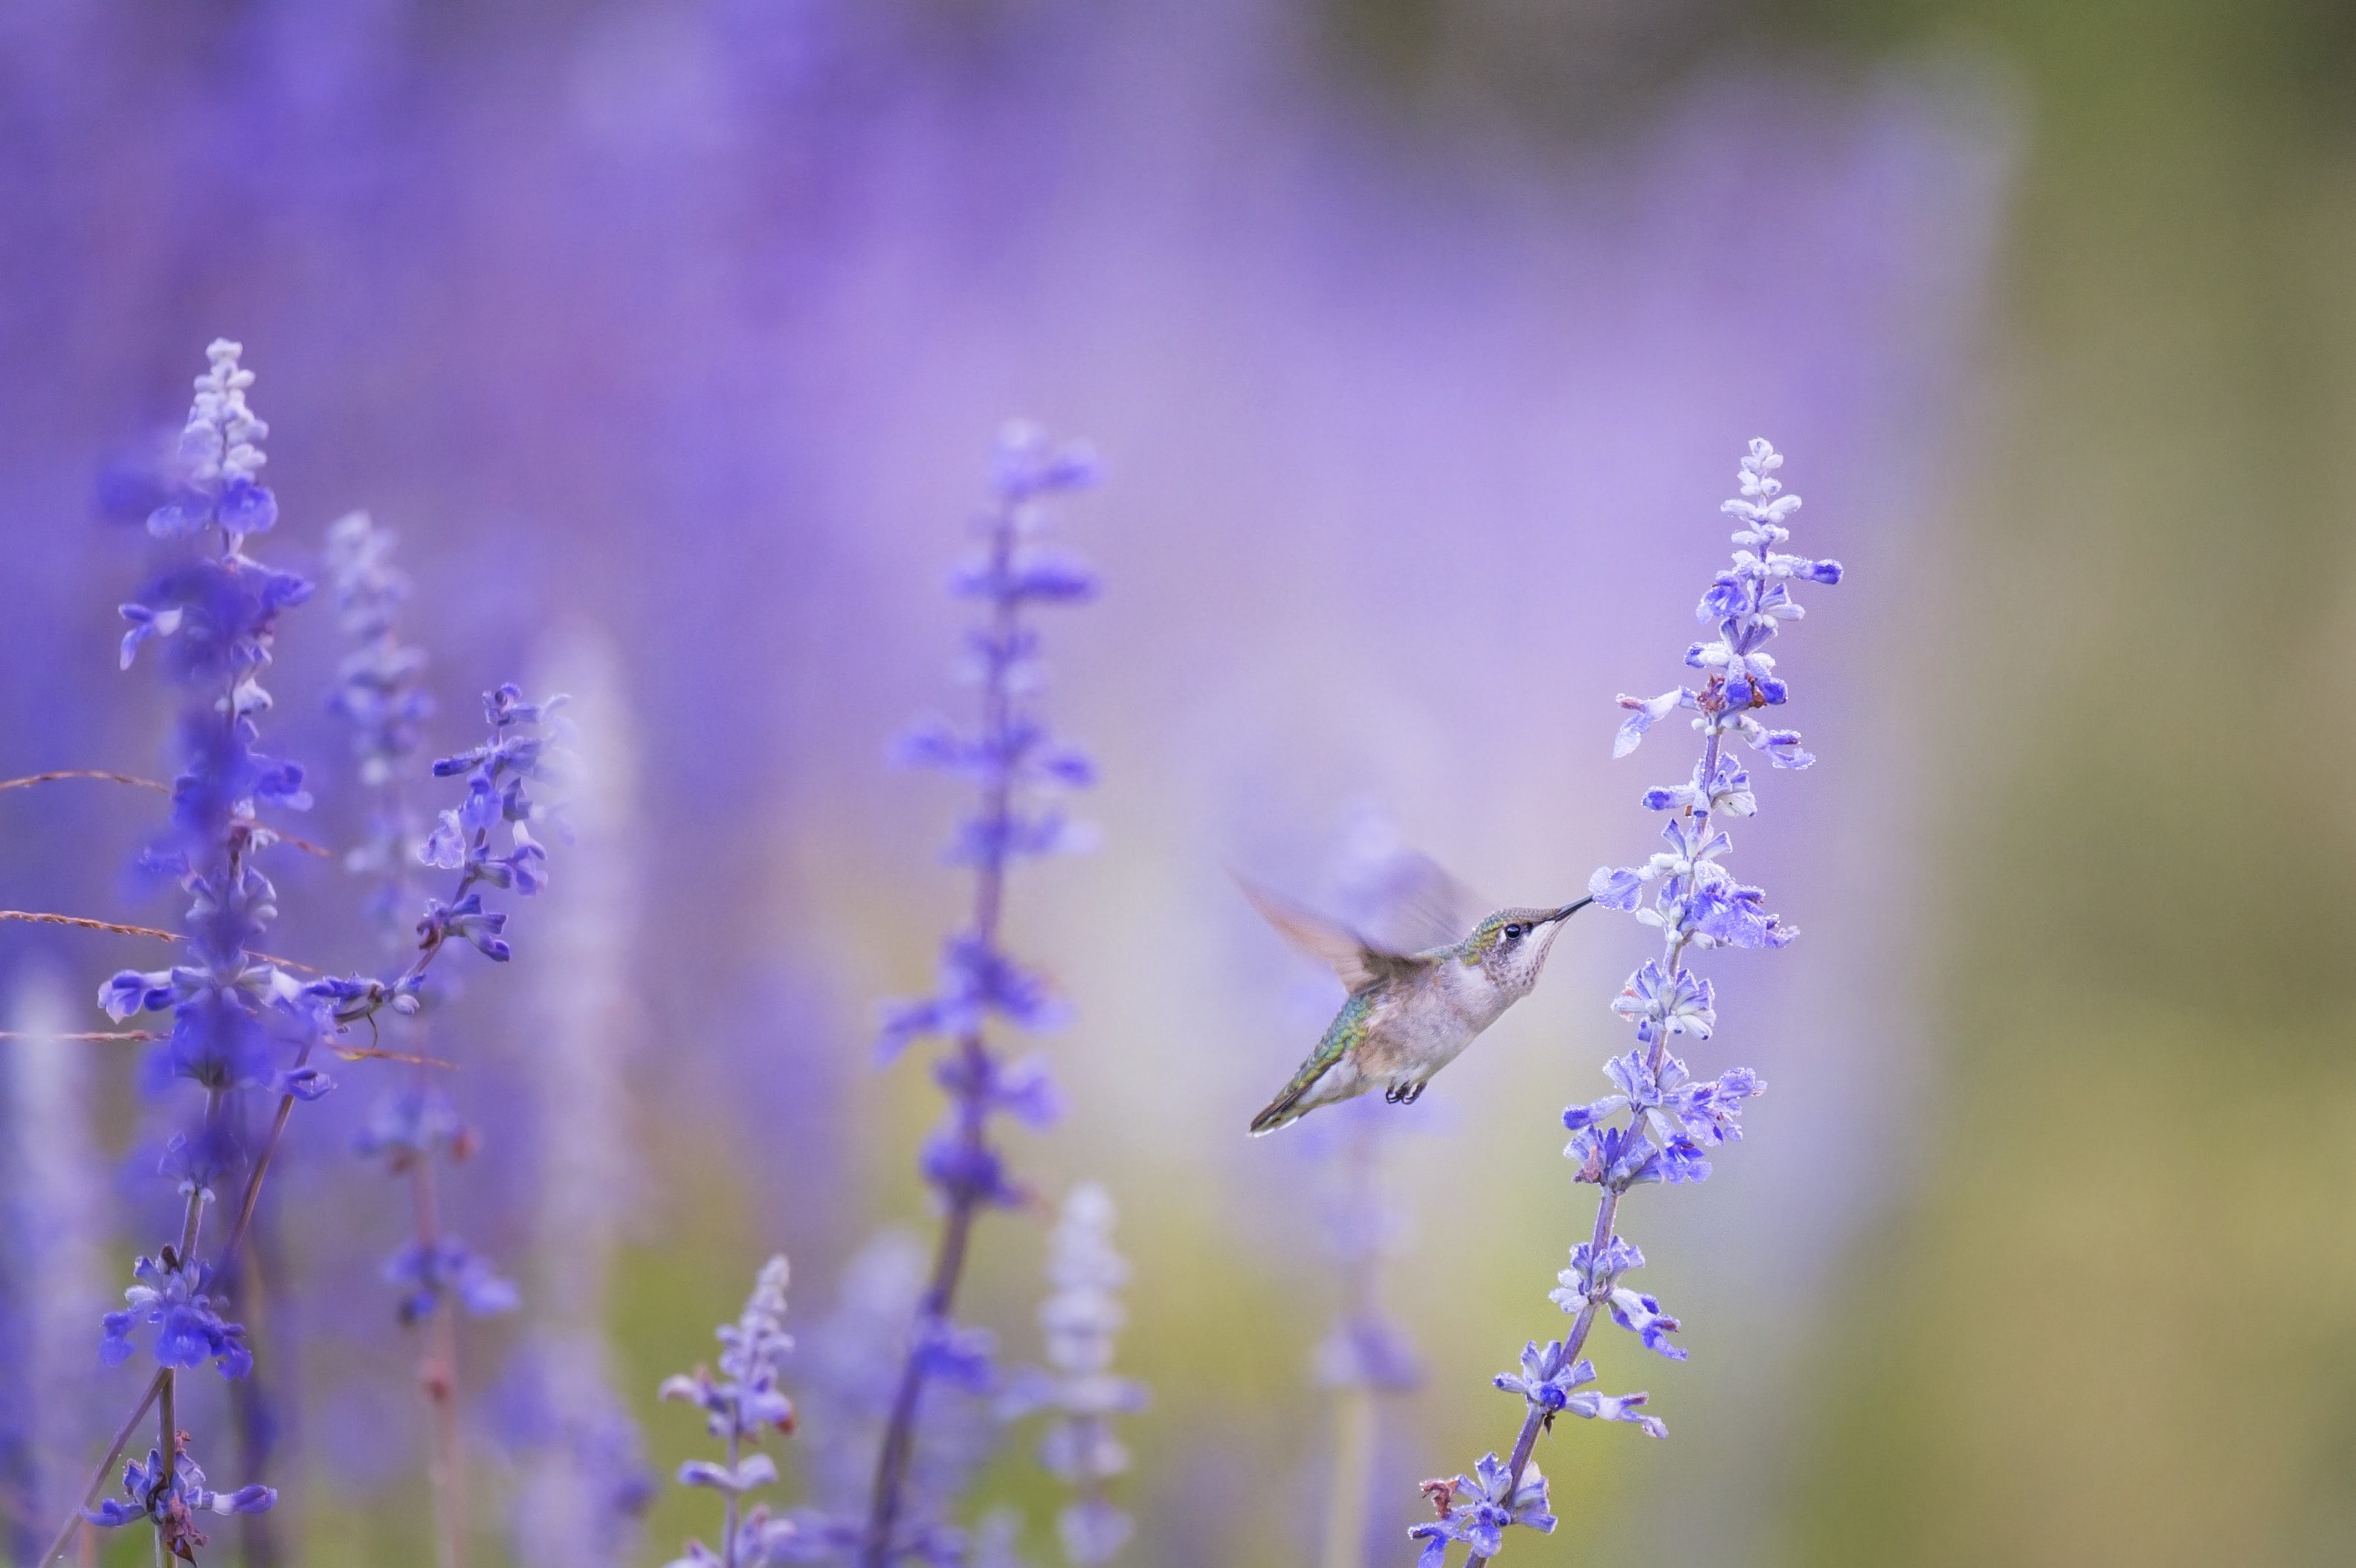 A hummingbird feeding on lavender flowers